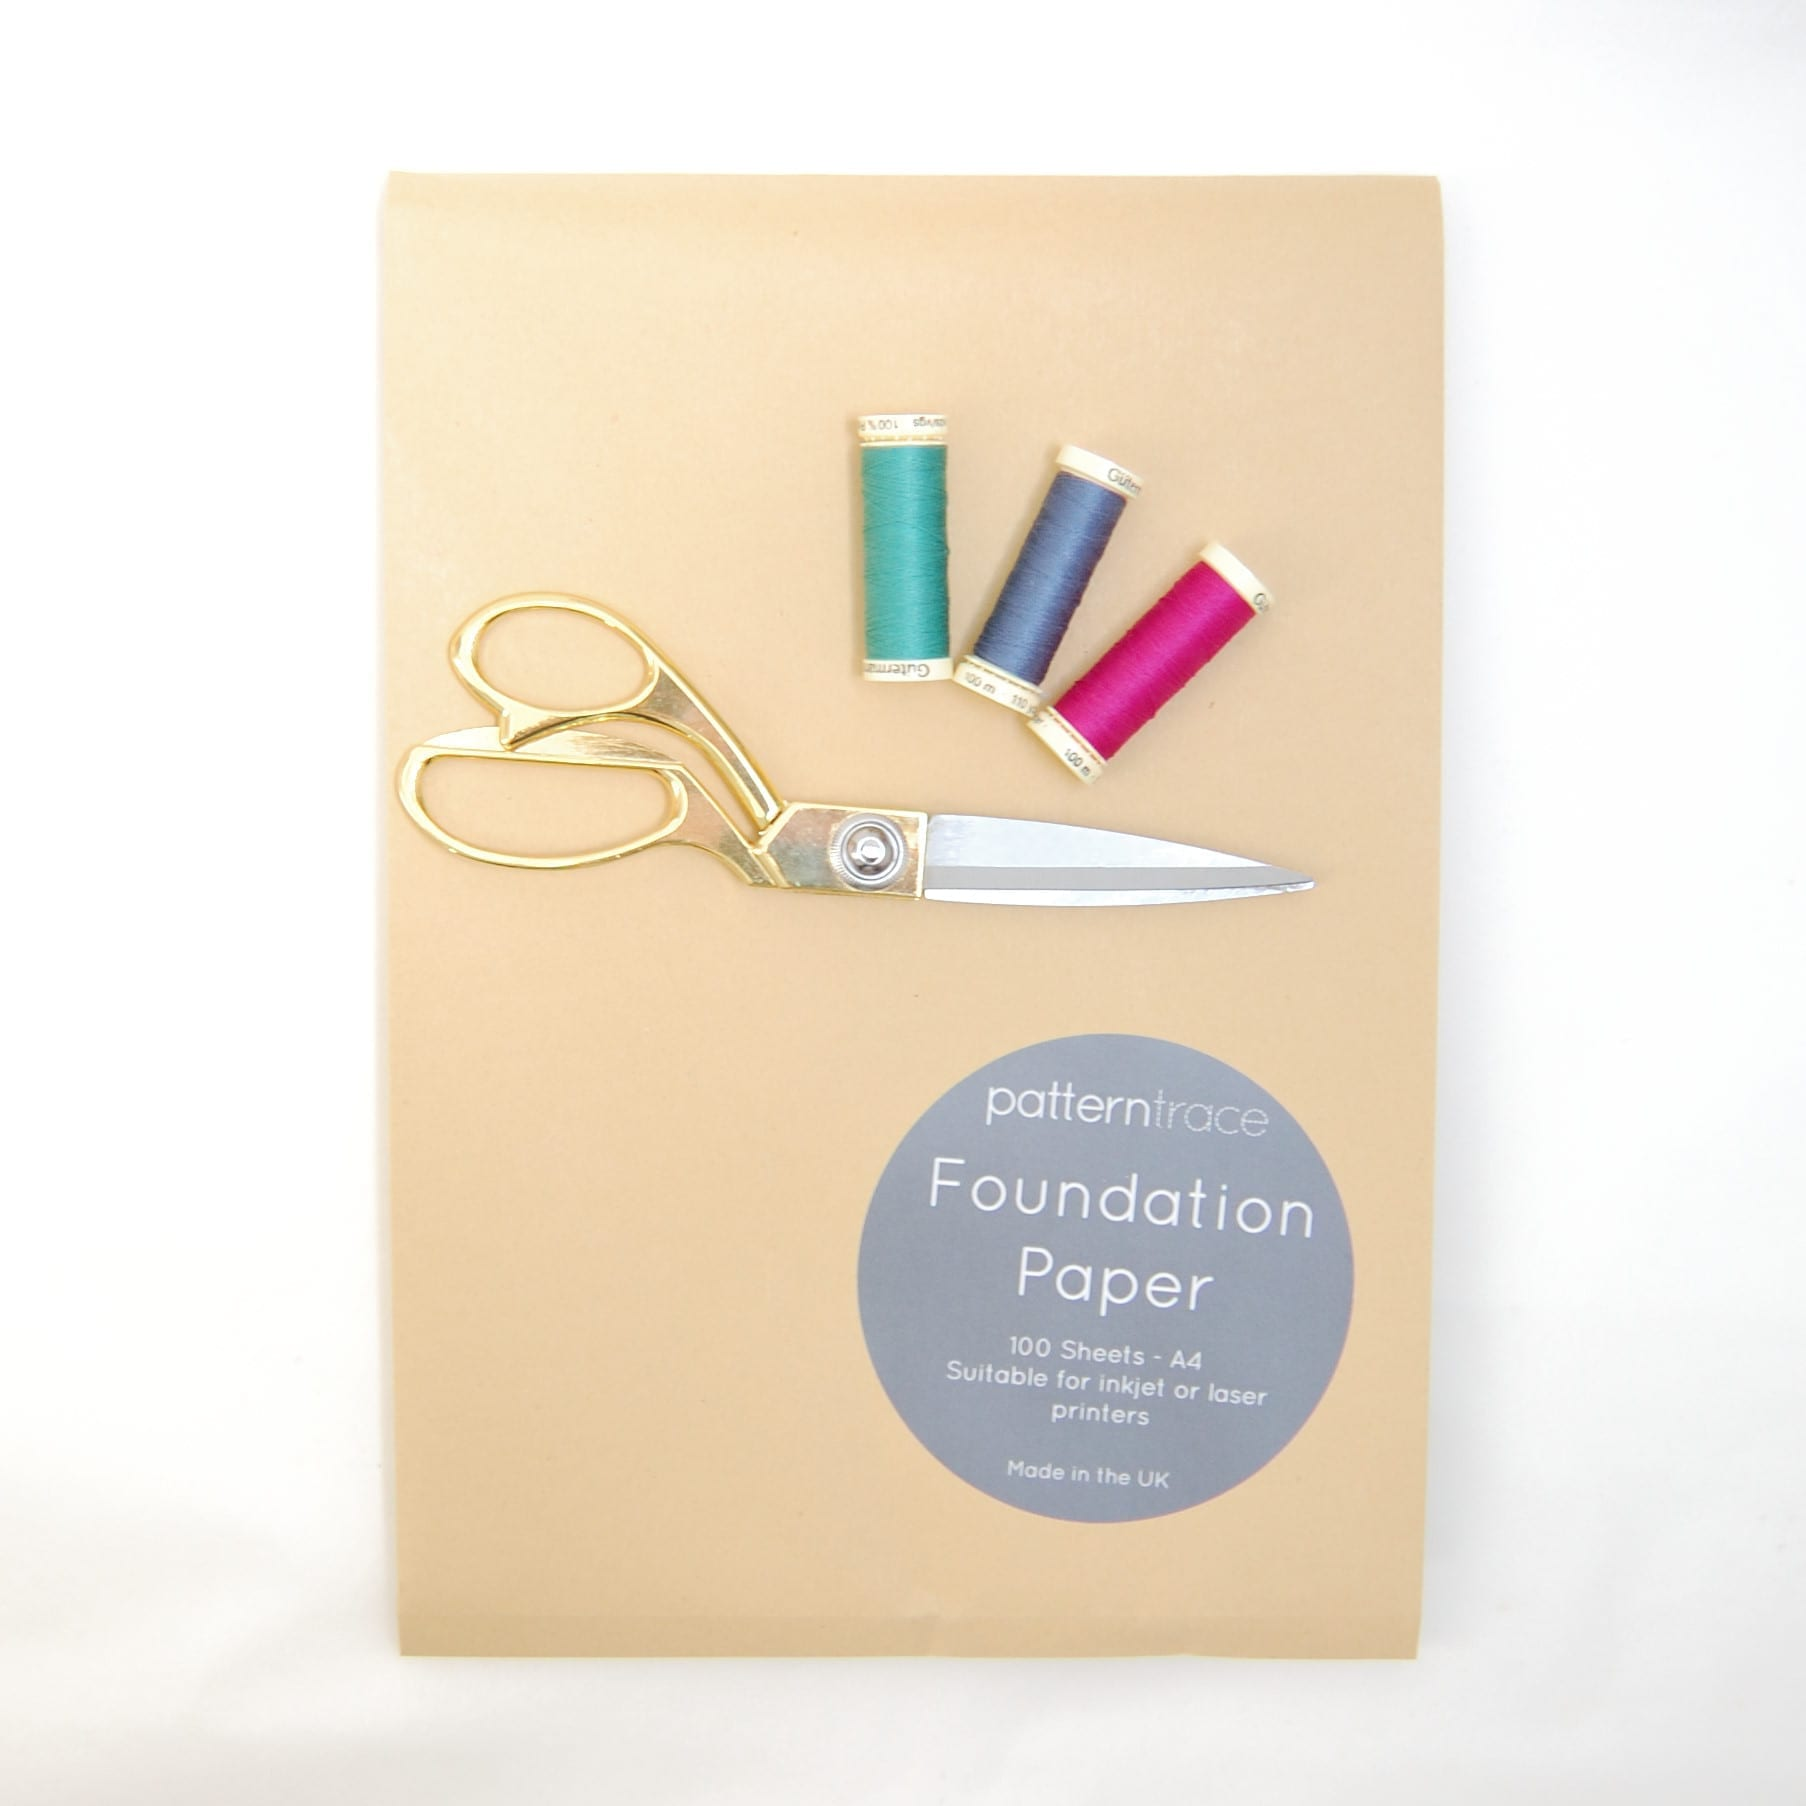 New Printable Foundation Paper!